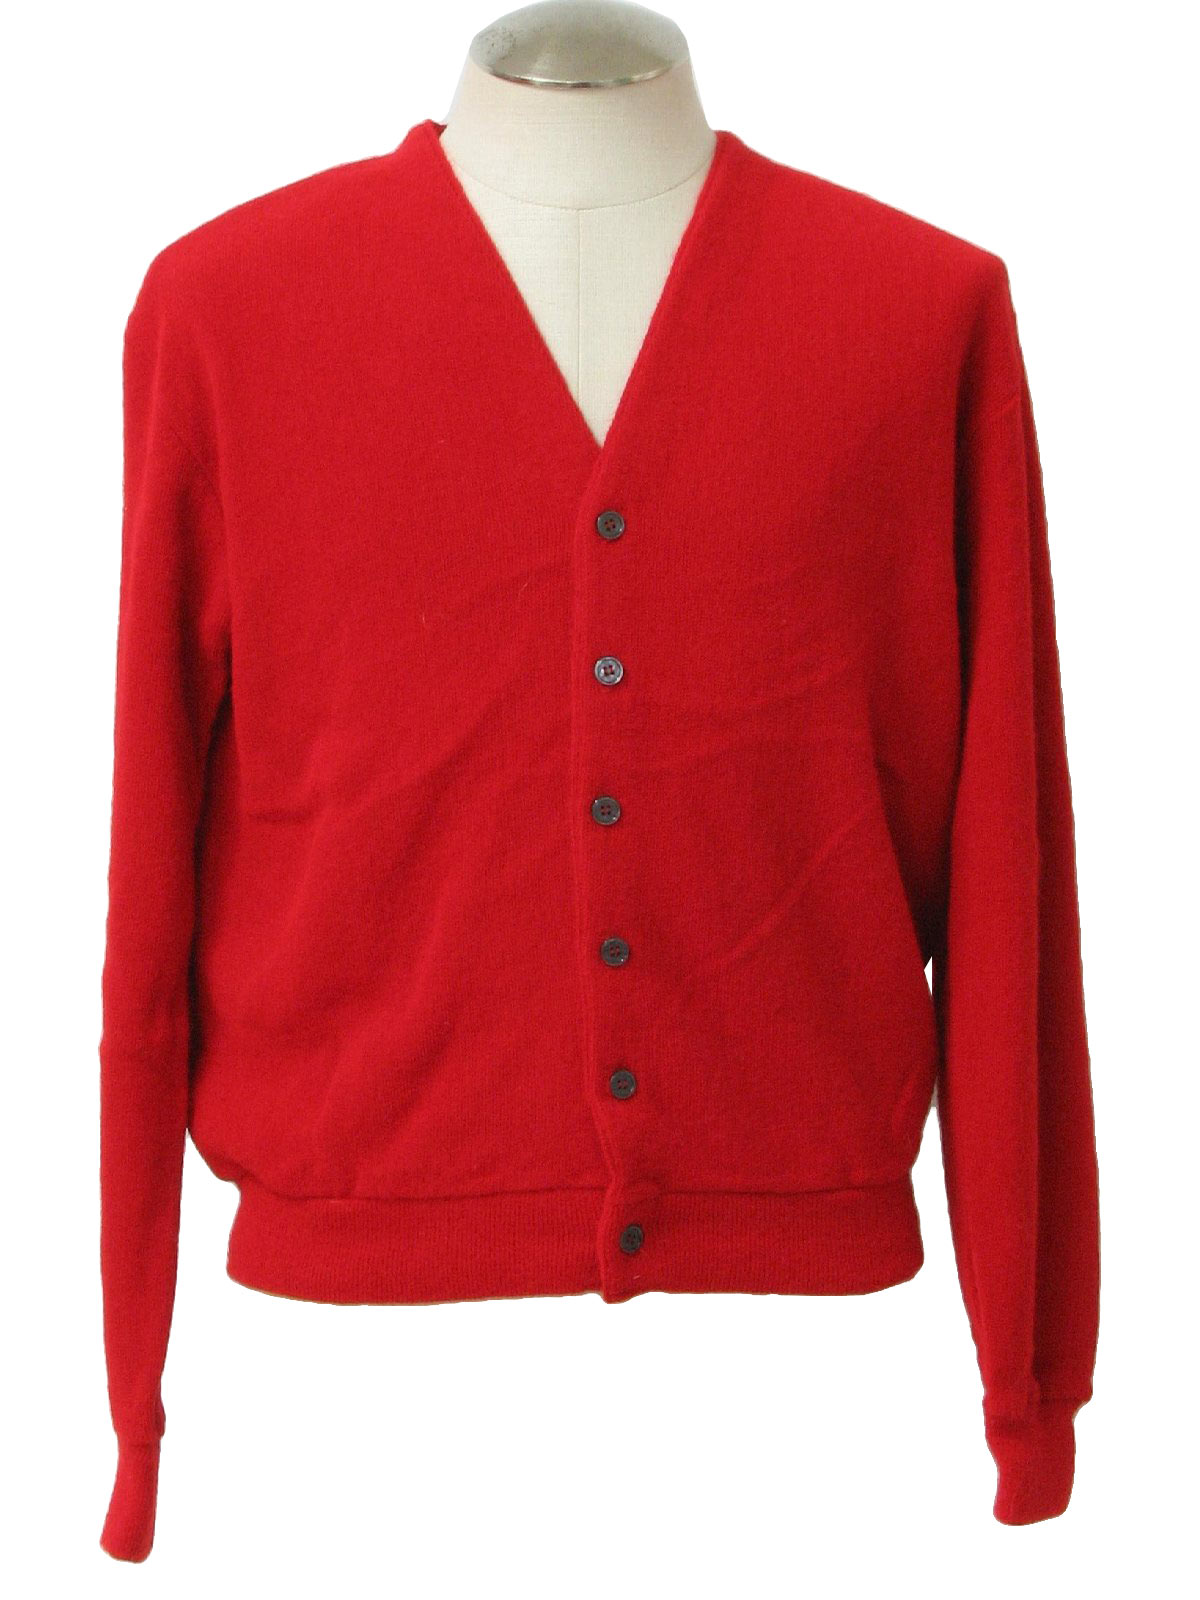 Ferrante 70's Vintage Caridgan Sweater: 70s -Ferrante- Mens red ...